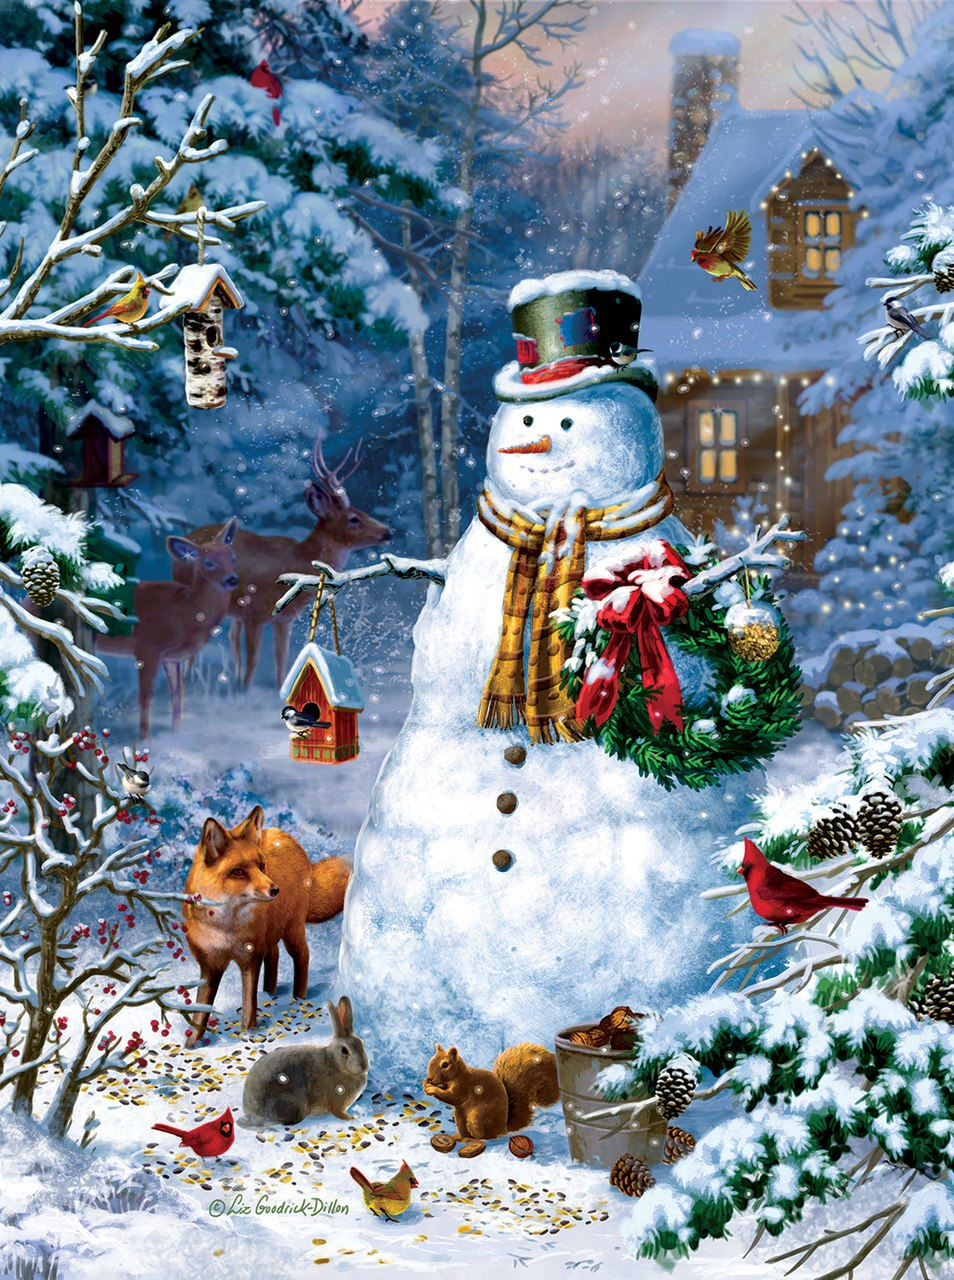 Winter Cabin Snowman - 1000pc Jigsaw Puzzle by Sunsout